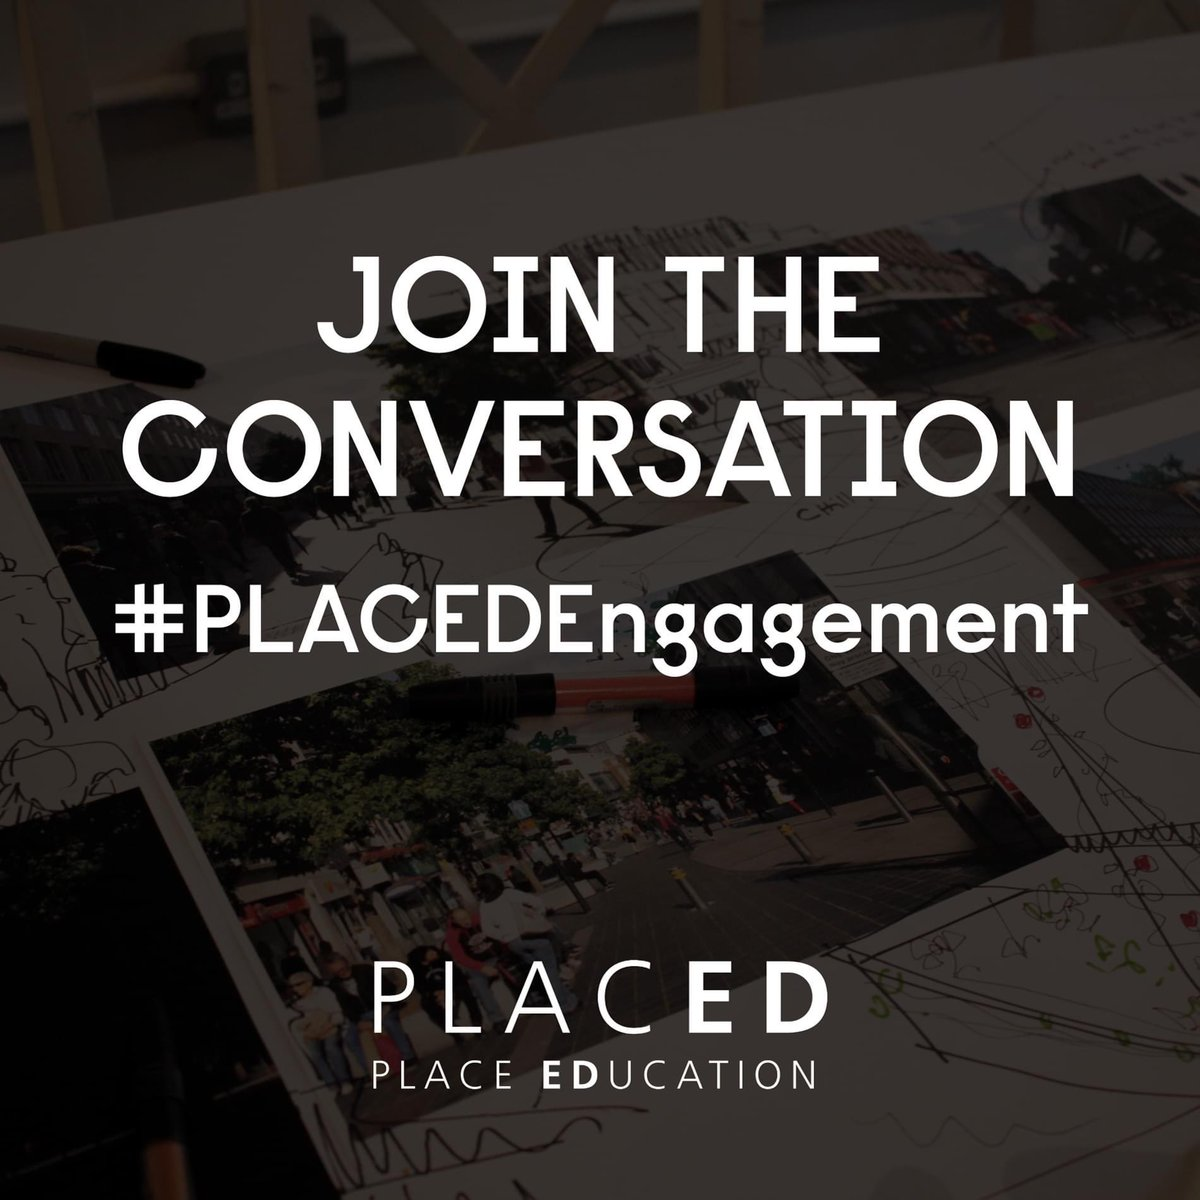 HAVE YOU HAD YOUR SAY? We want to hear from YOU! Hit: placedengagement.org.uk/highstreets now to get involved and share your views on your local high street! We want to know what you love, what you'd like to see improved or changed and how you think... [1/2] #PLACED